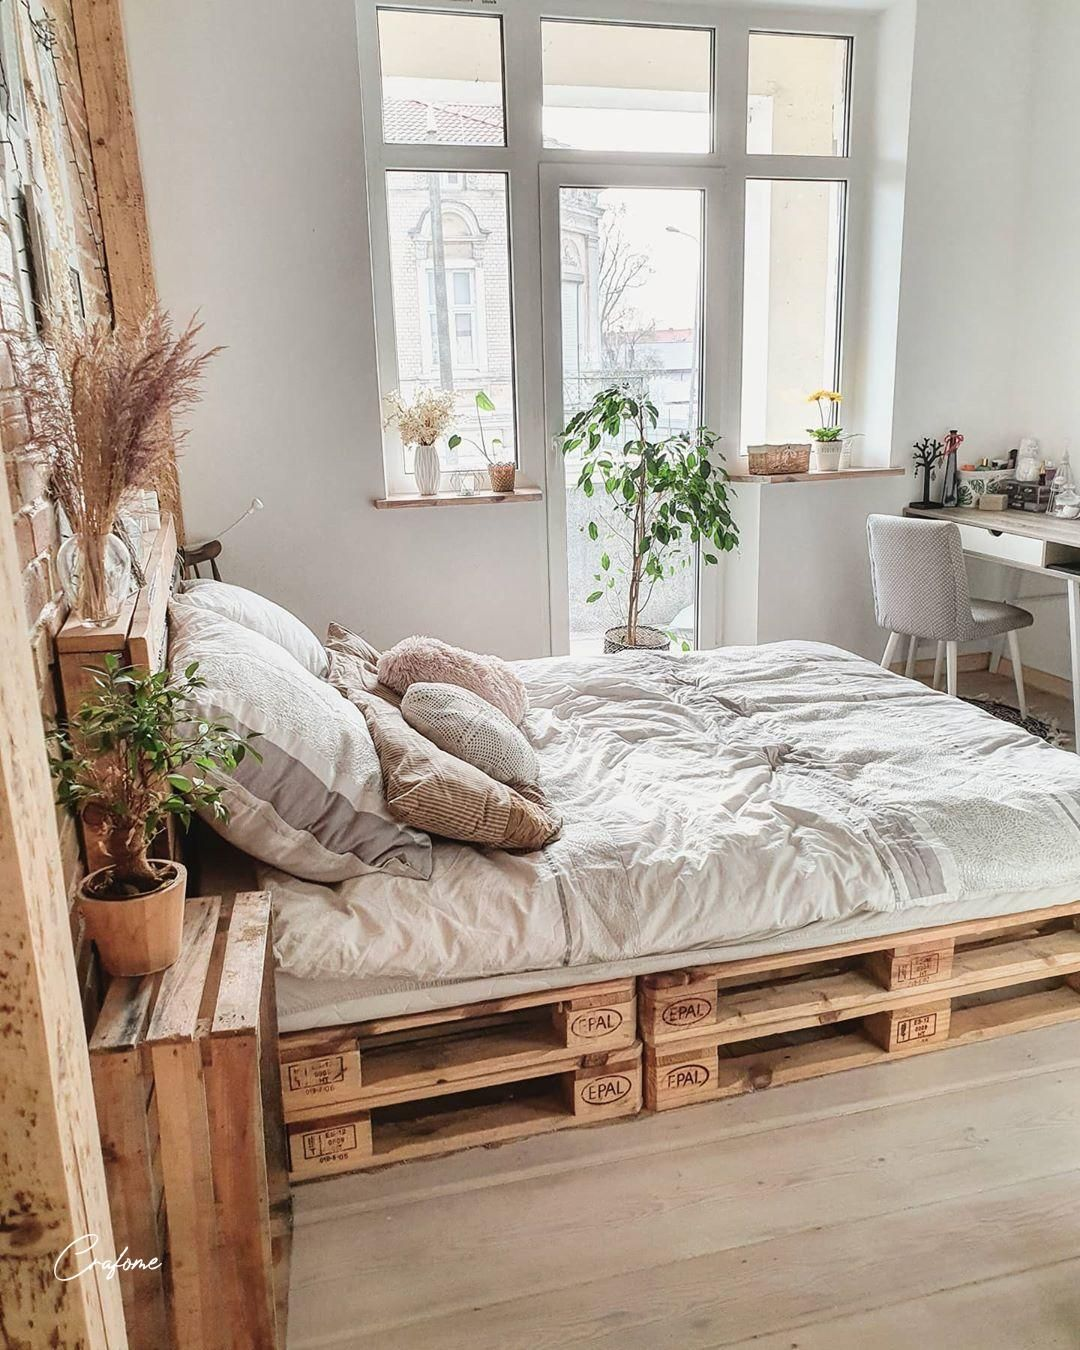 50+ Adorable Pallet Bed Ideas You Will Love - Crafome   Pallet furniture  bedroom, Redecorate bedroom, Bedroom interior